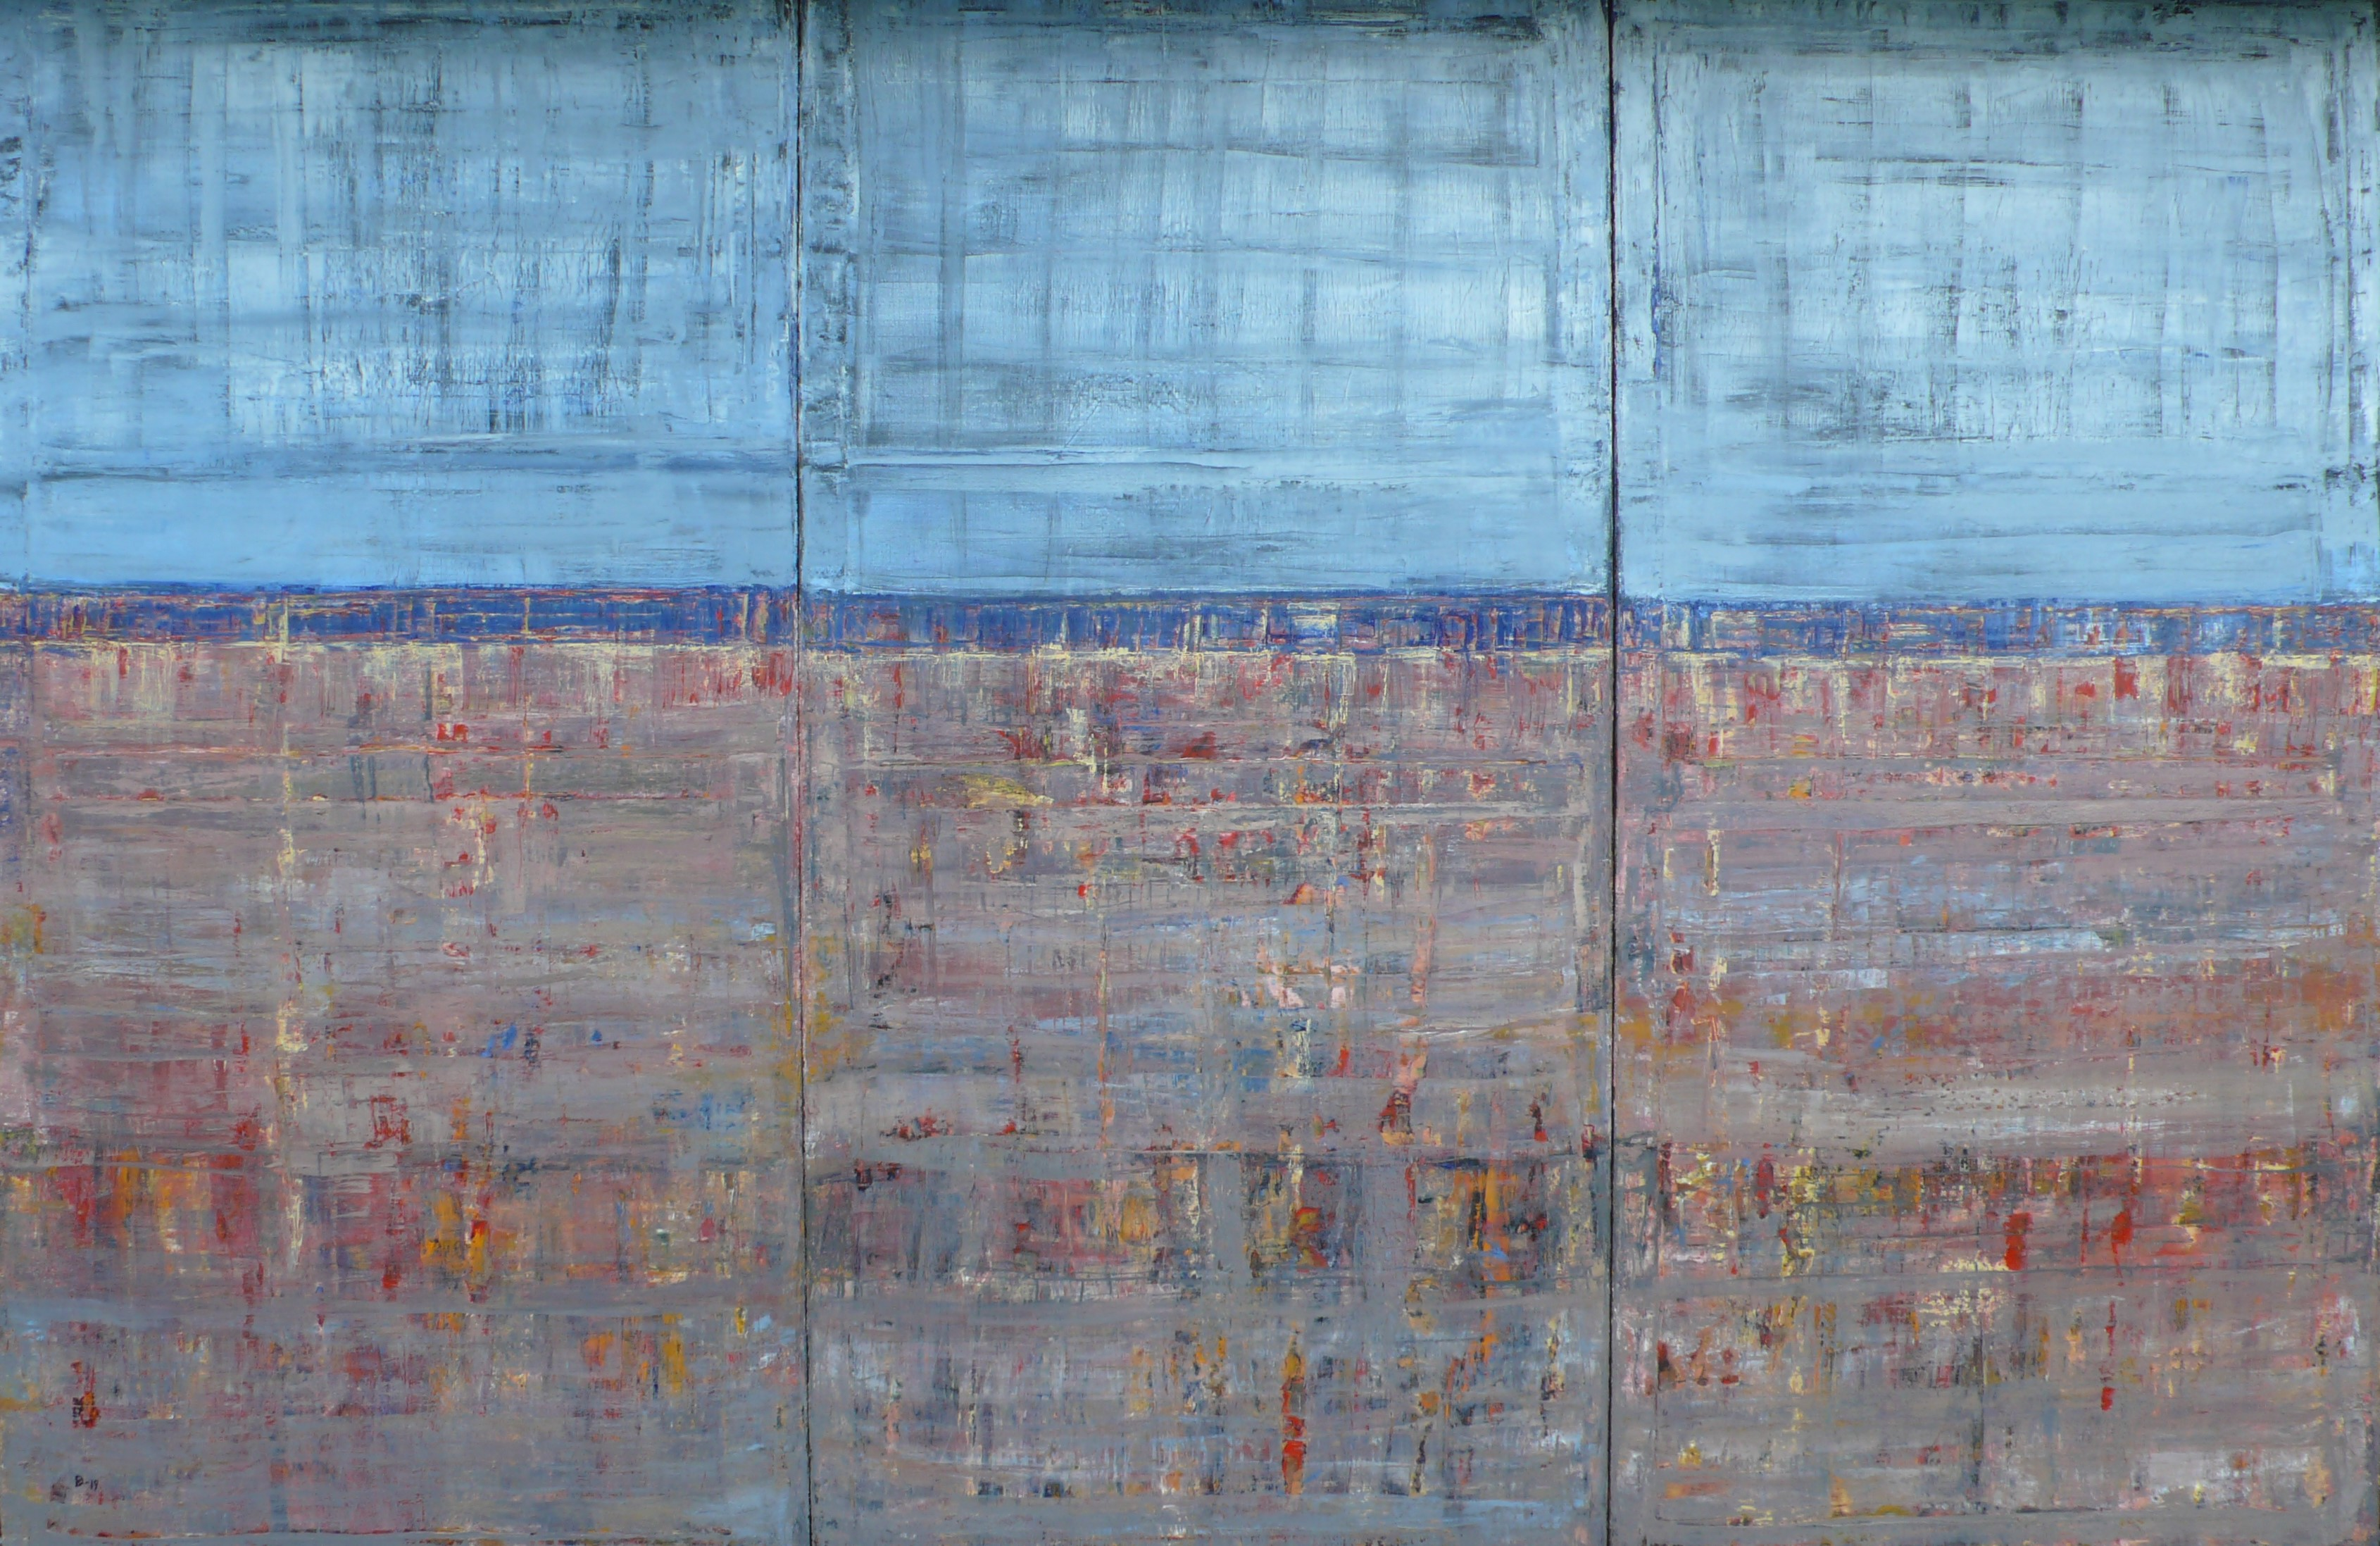 Pictures From No Man`s Land, 2018, oil on canvas, 240x330cm